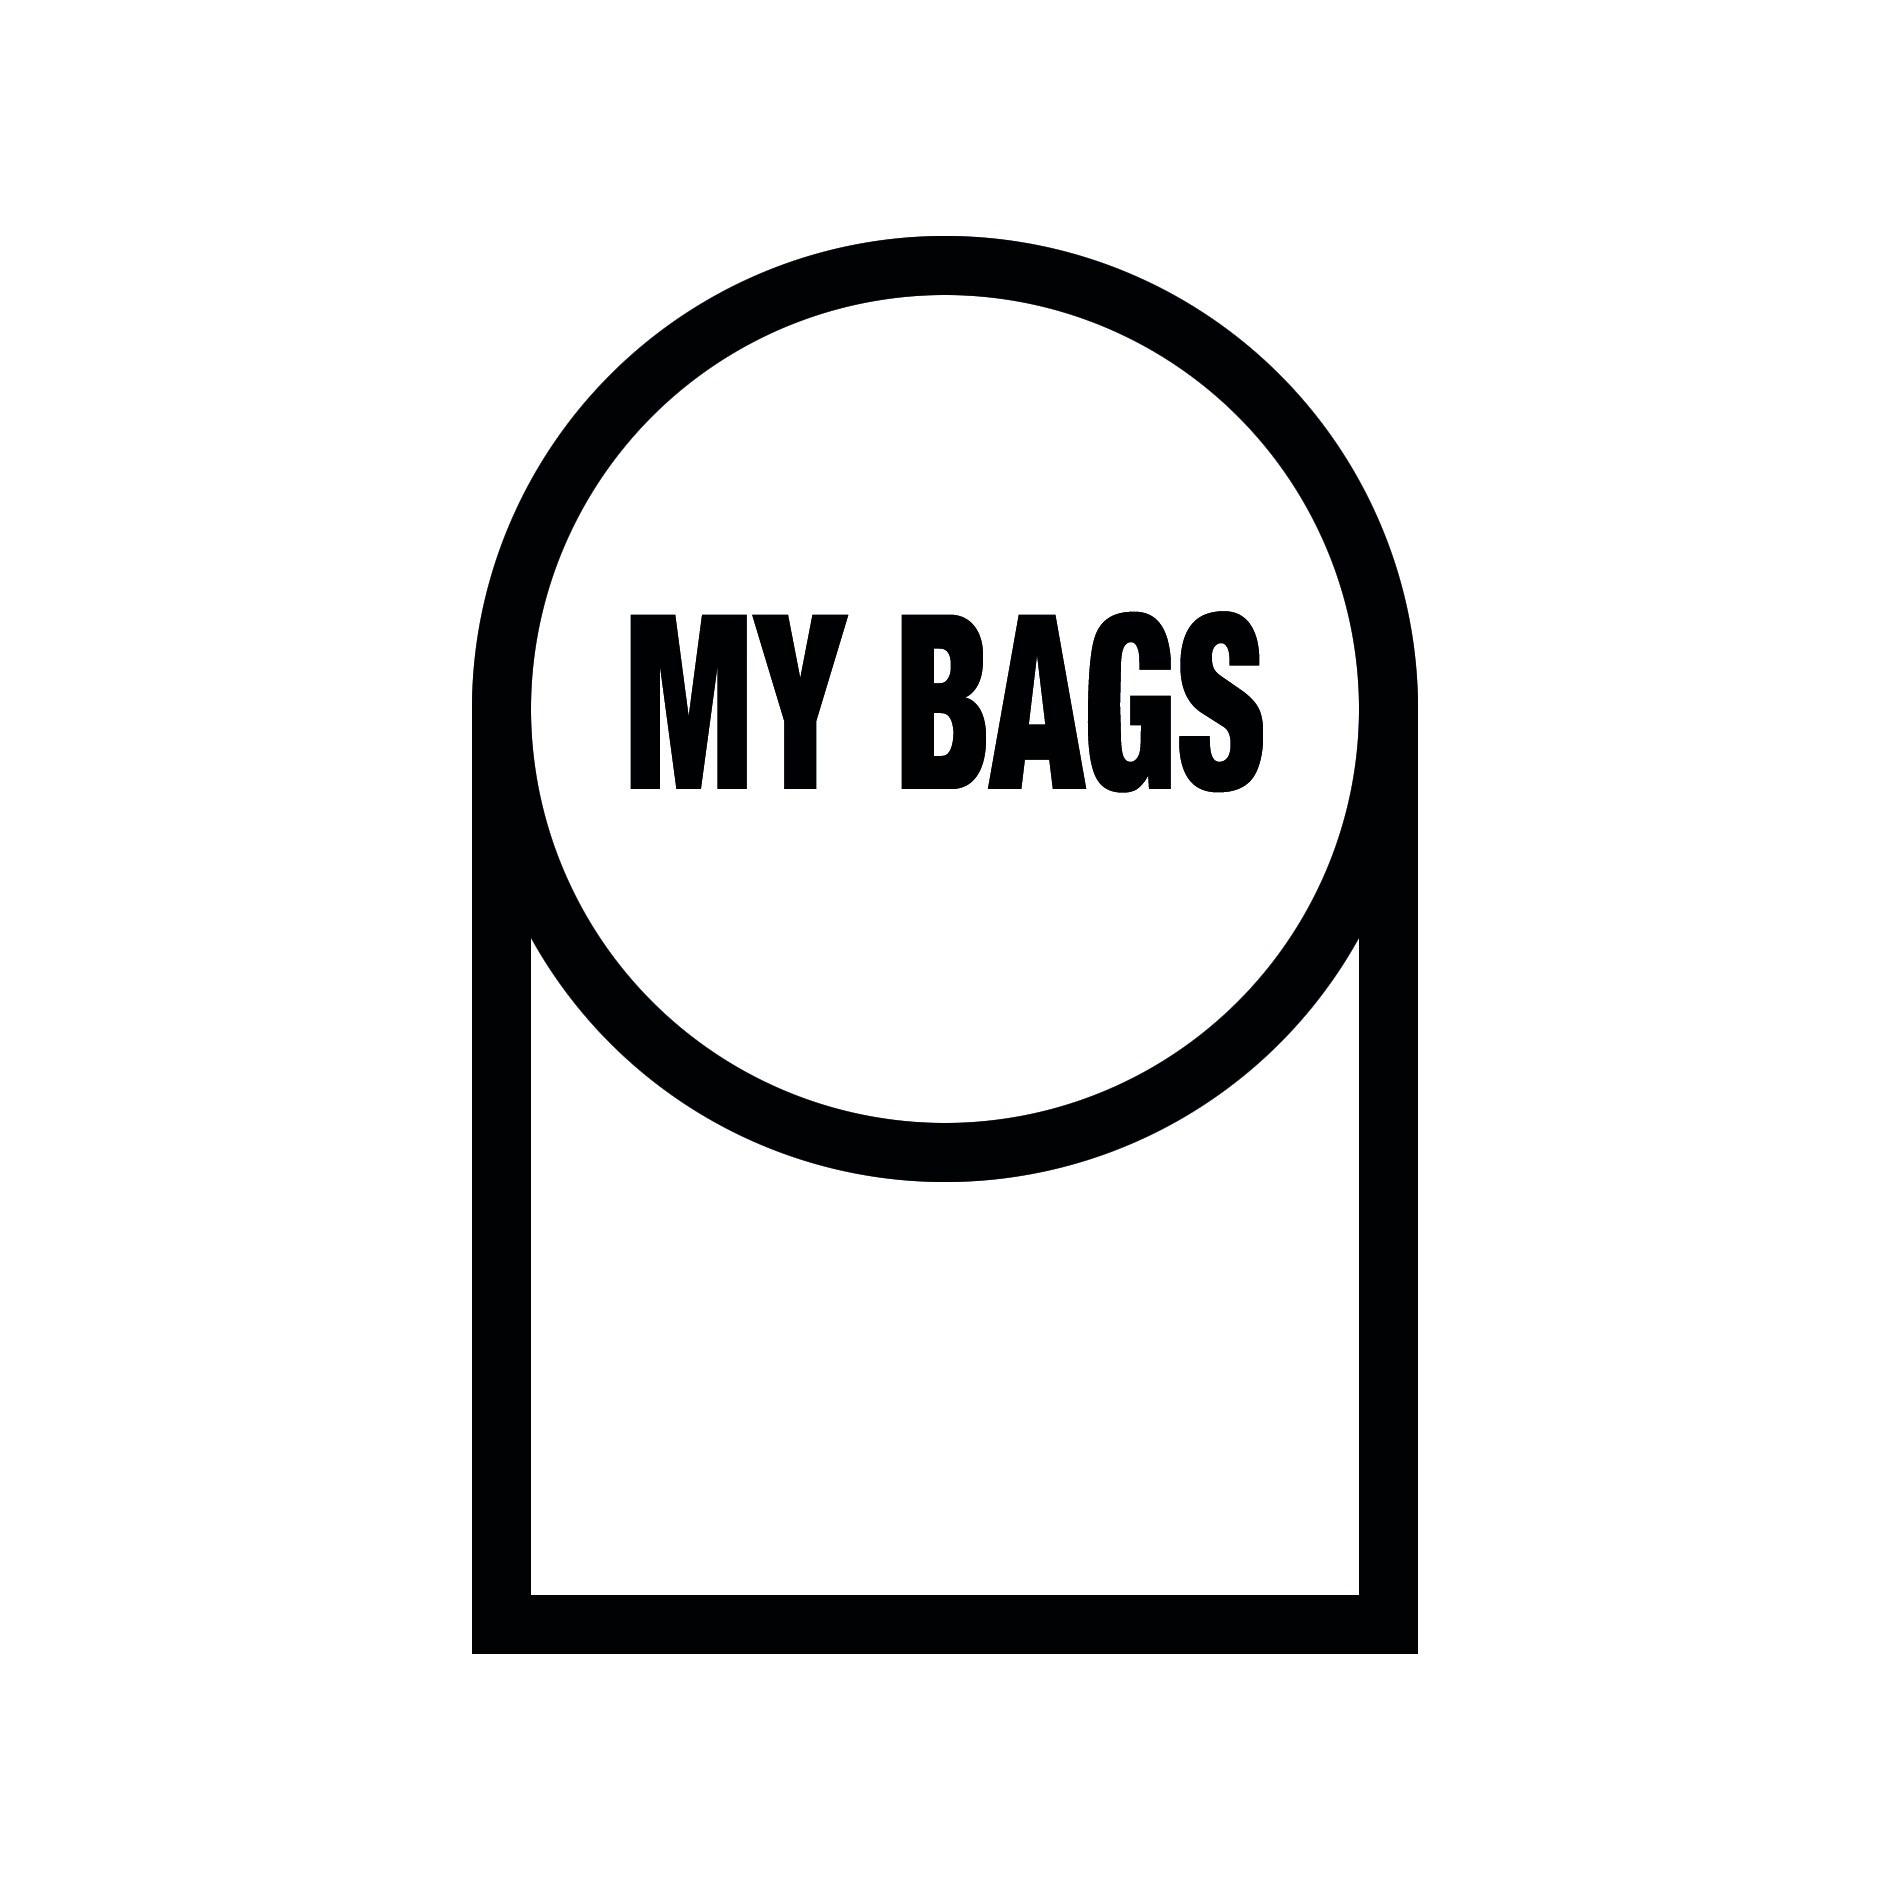 sMY BAGS